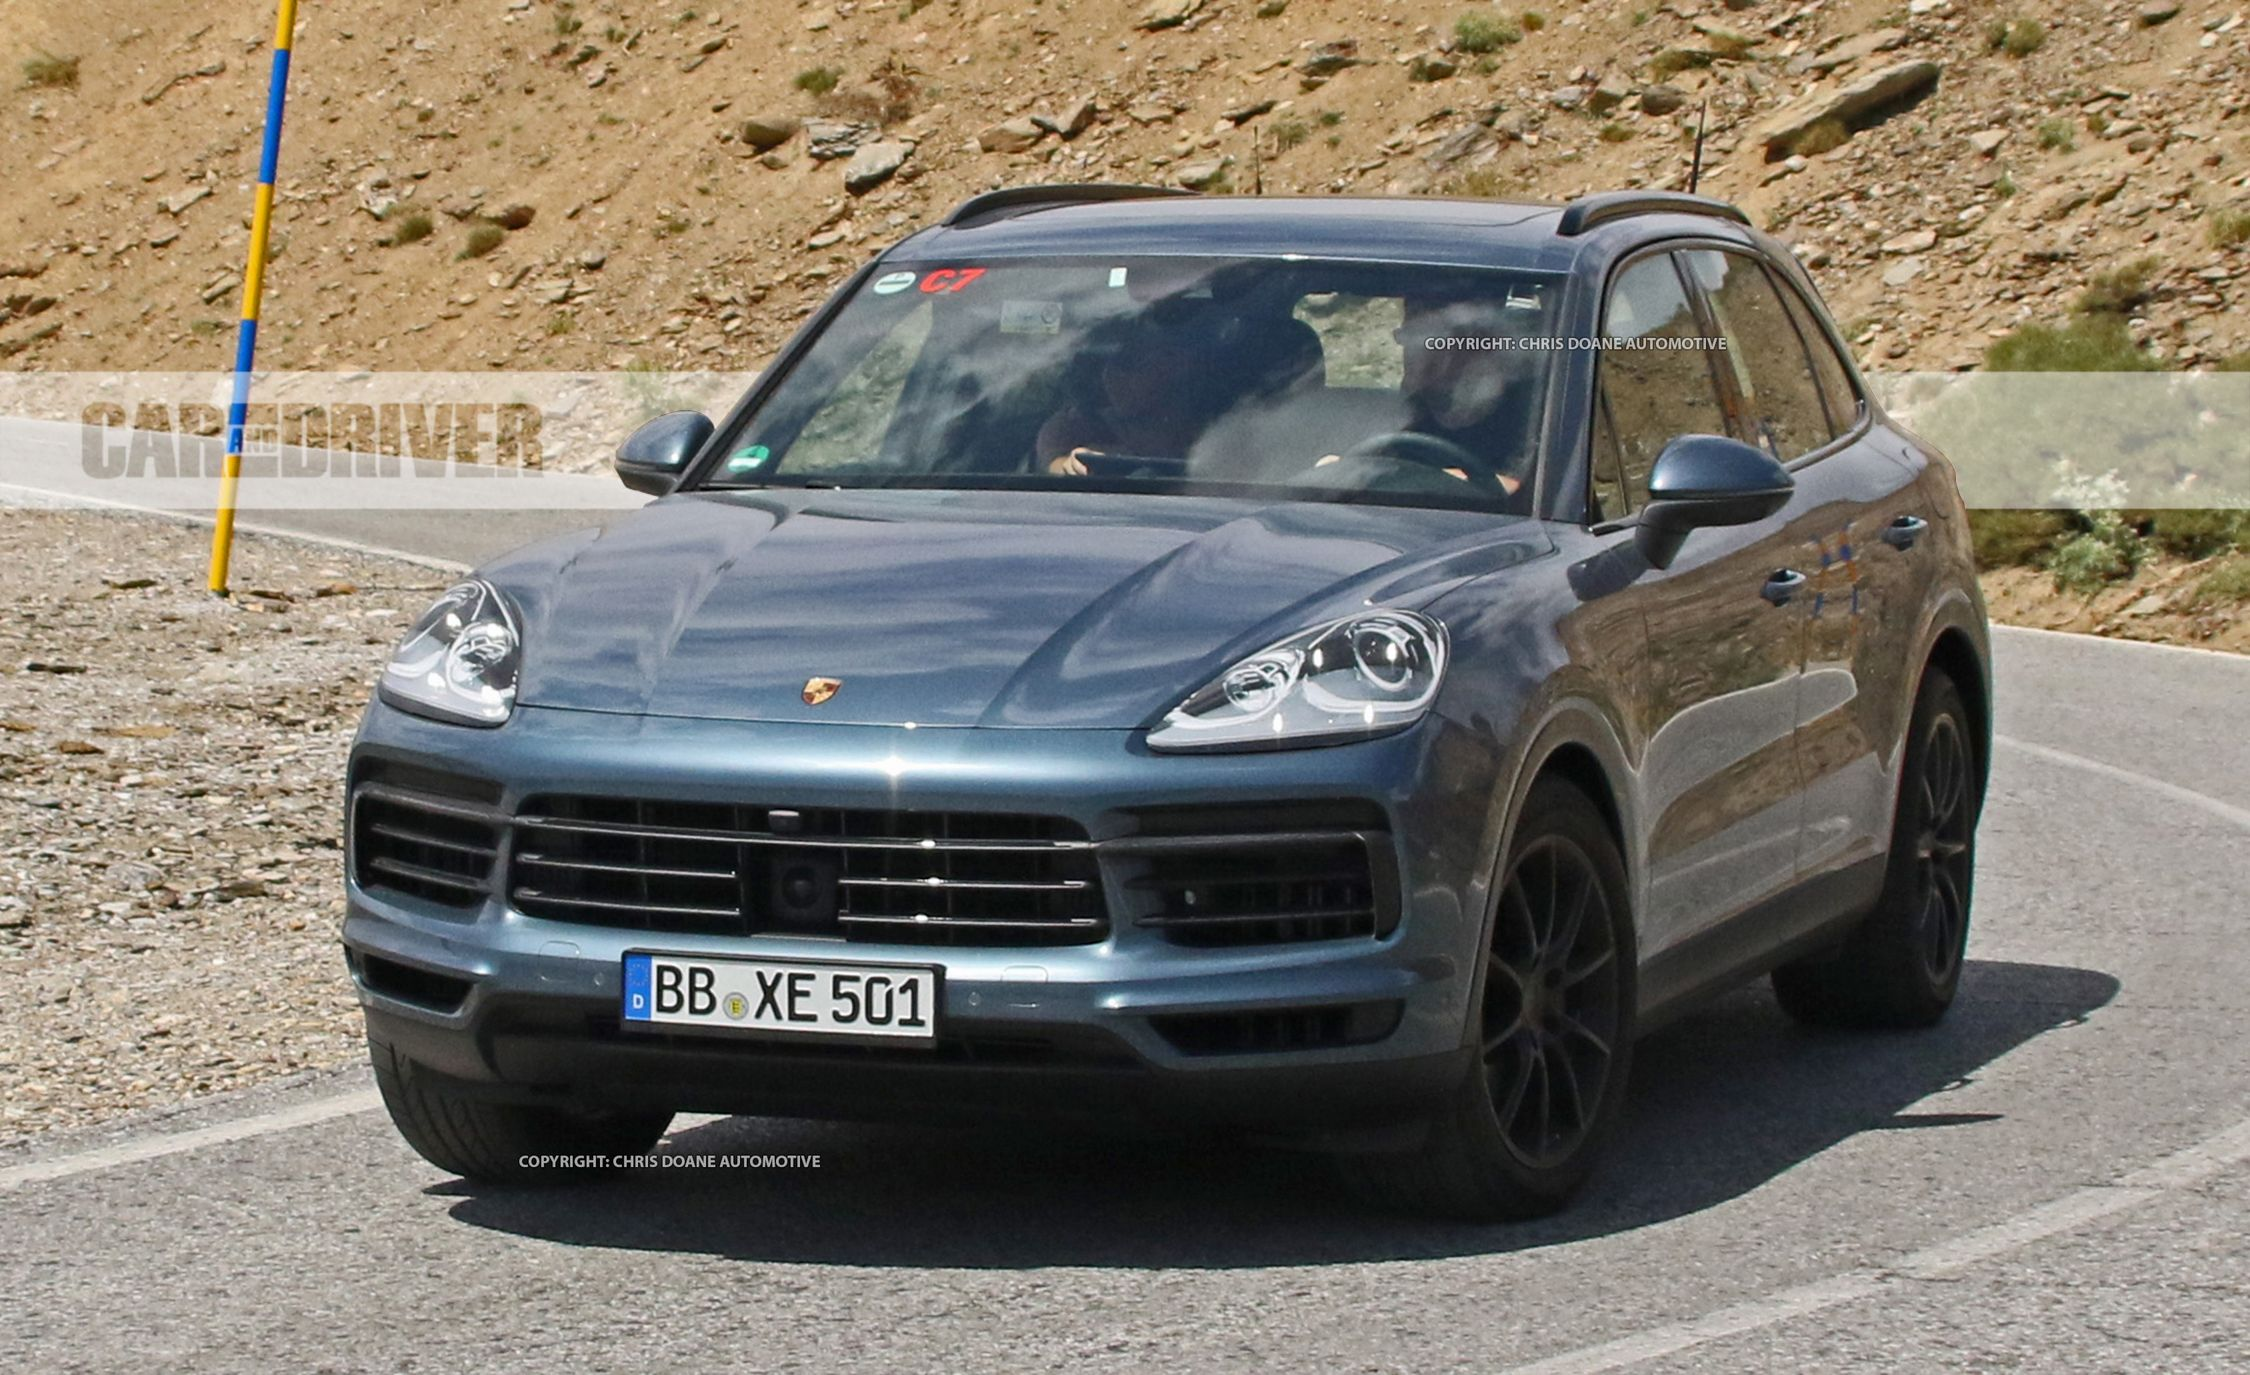 2019 Porsche 911 Turbo S >> 2019 Porsche Cayenne Spy Photos | News | Car and Driver